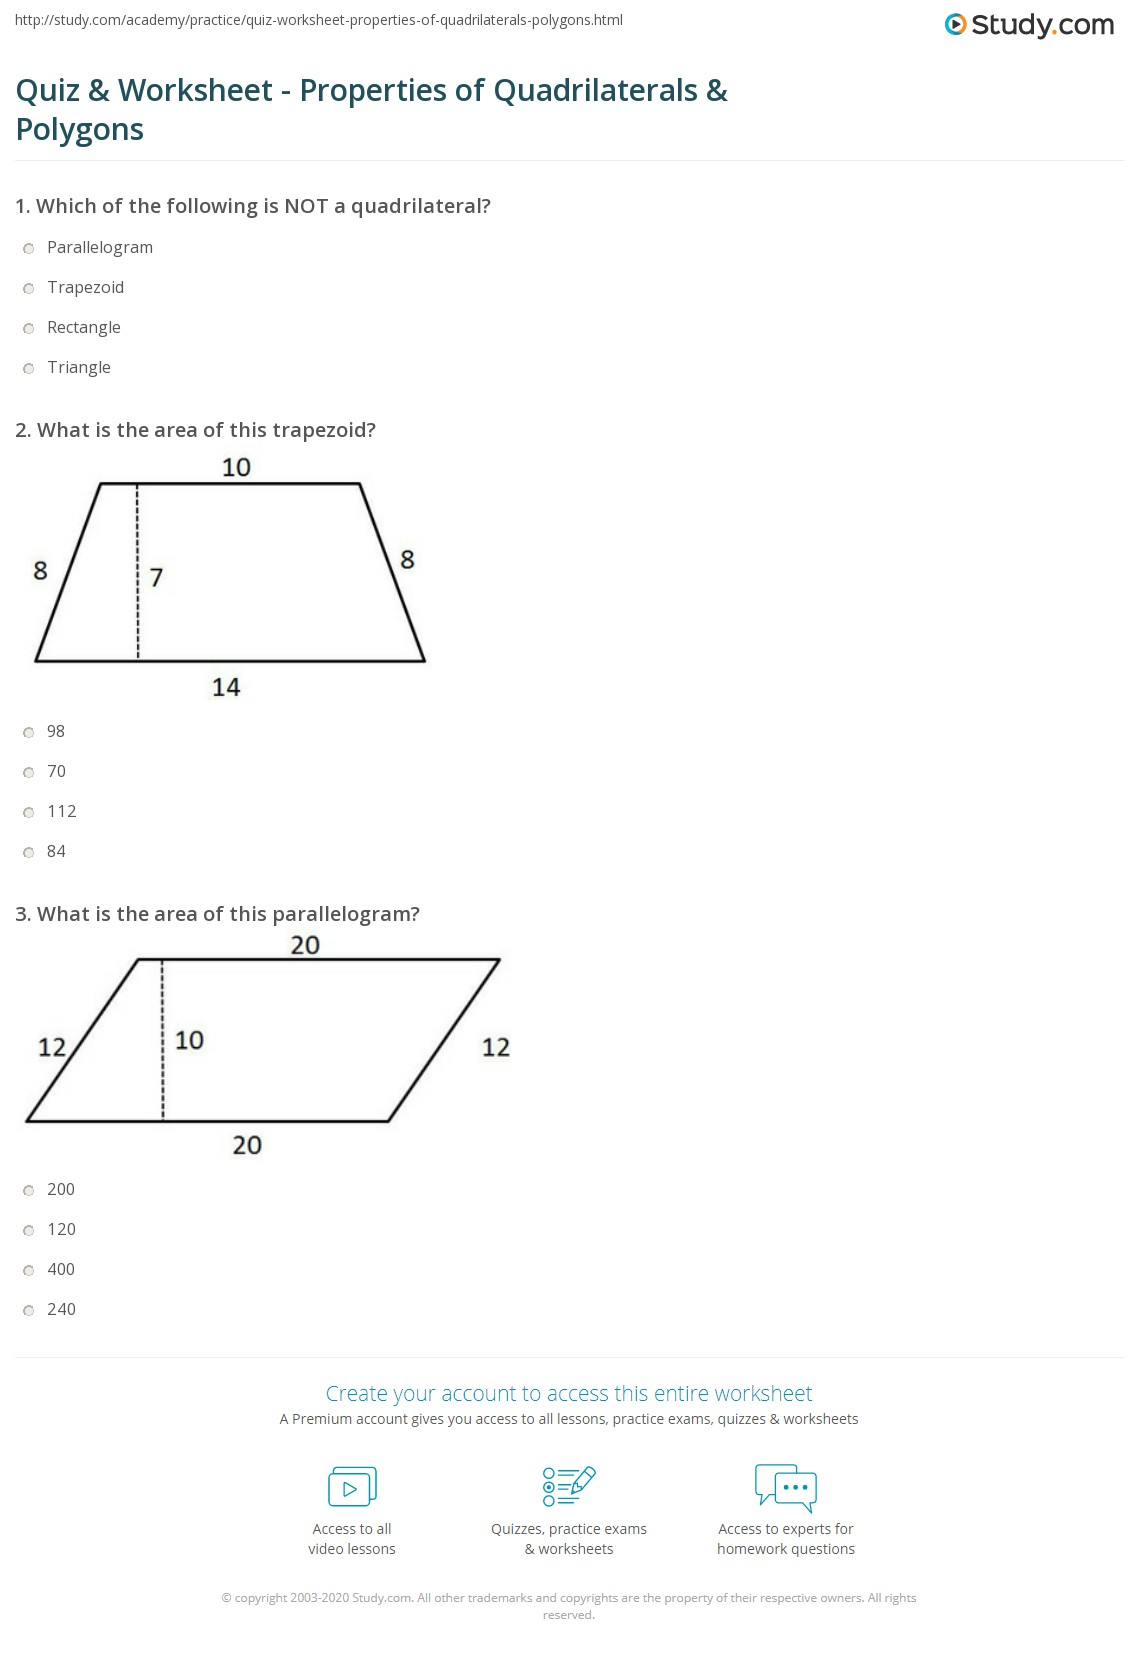 Worksheets Polygons Worksheet quiz worksheet properties of quadrilaterals polygons study com print shapes parallelograms trapezoids worksheet